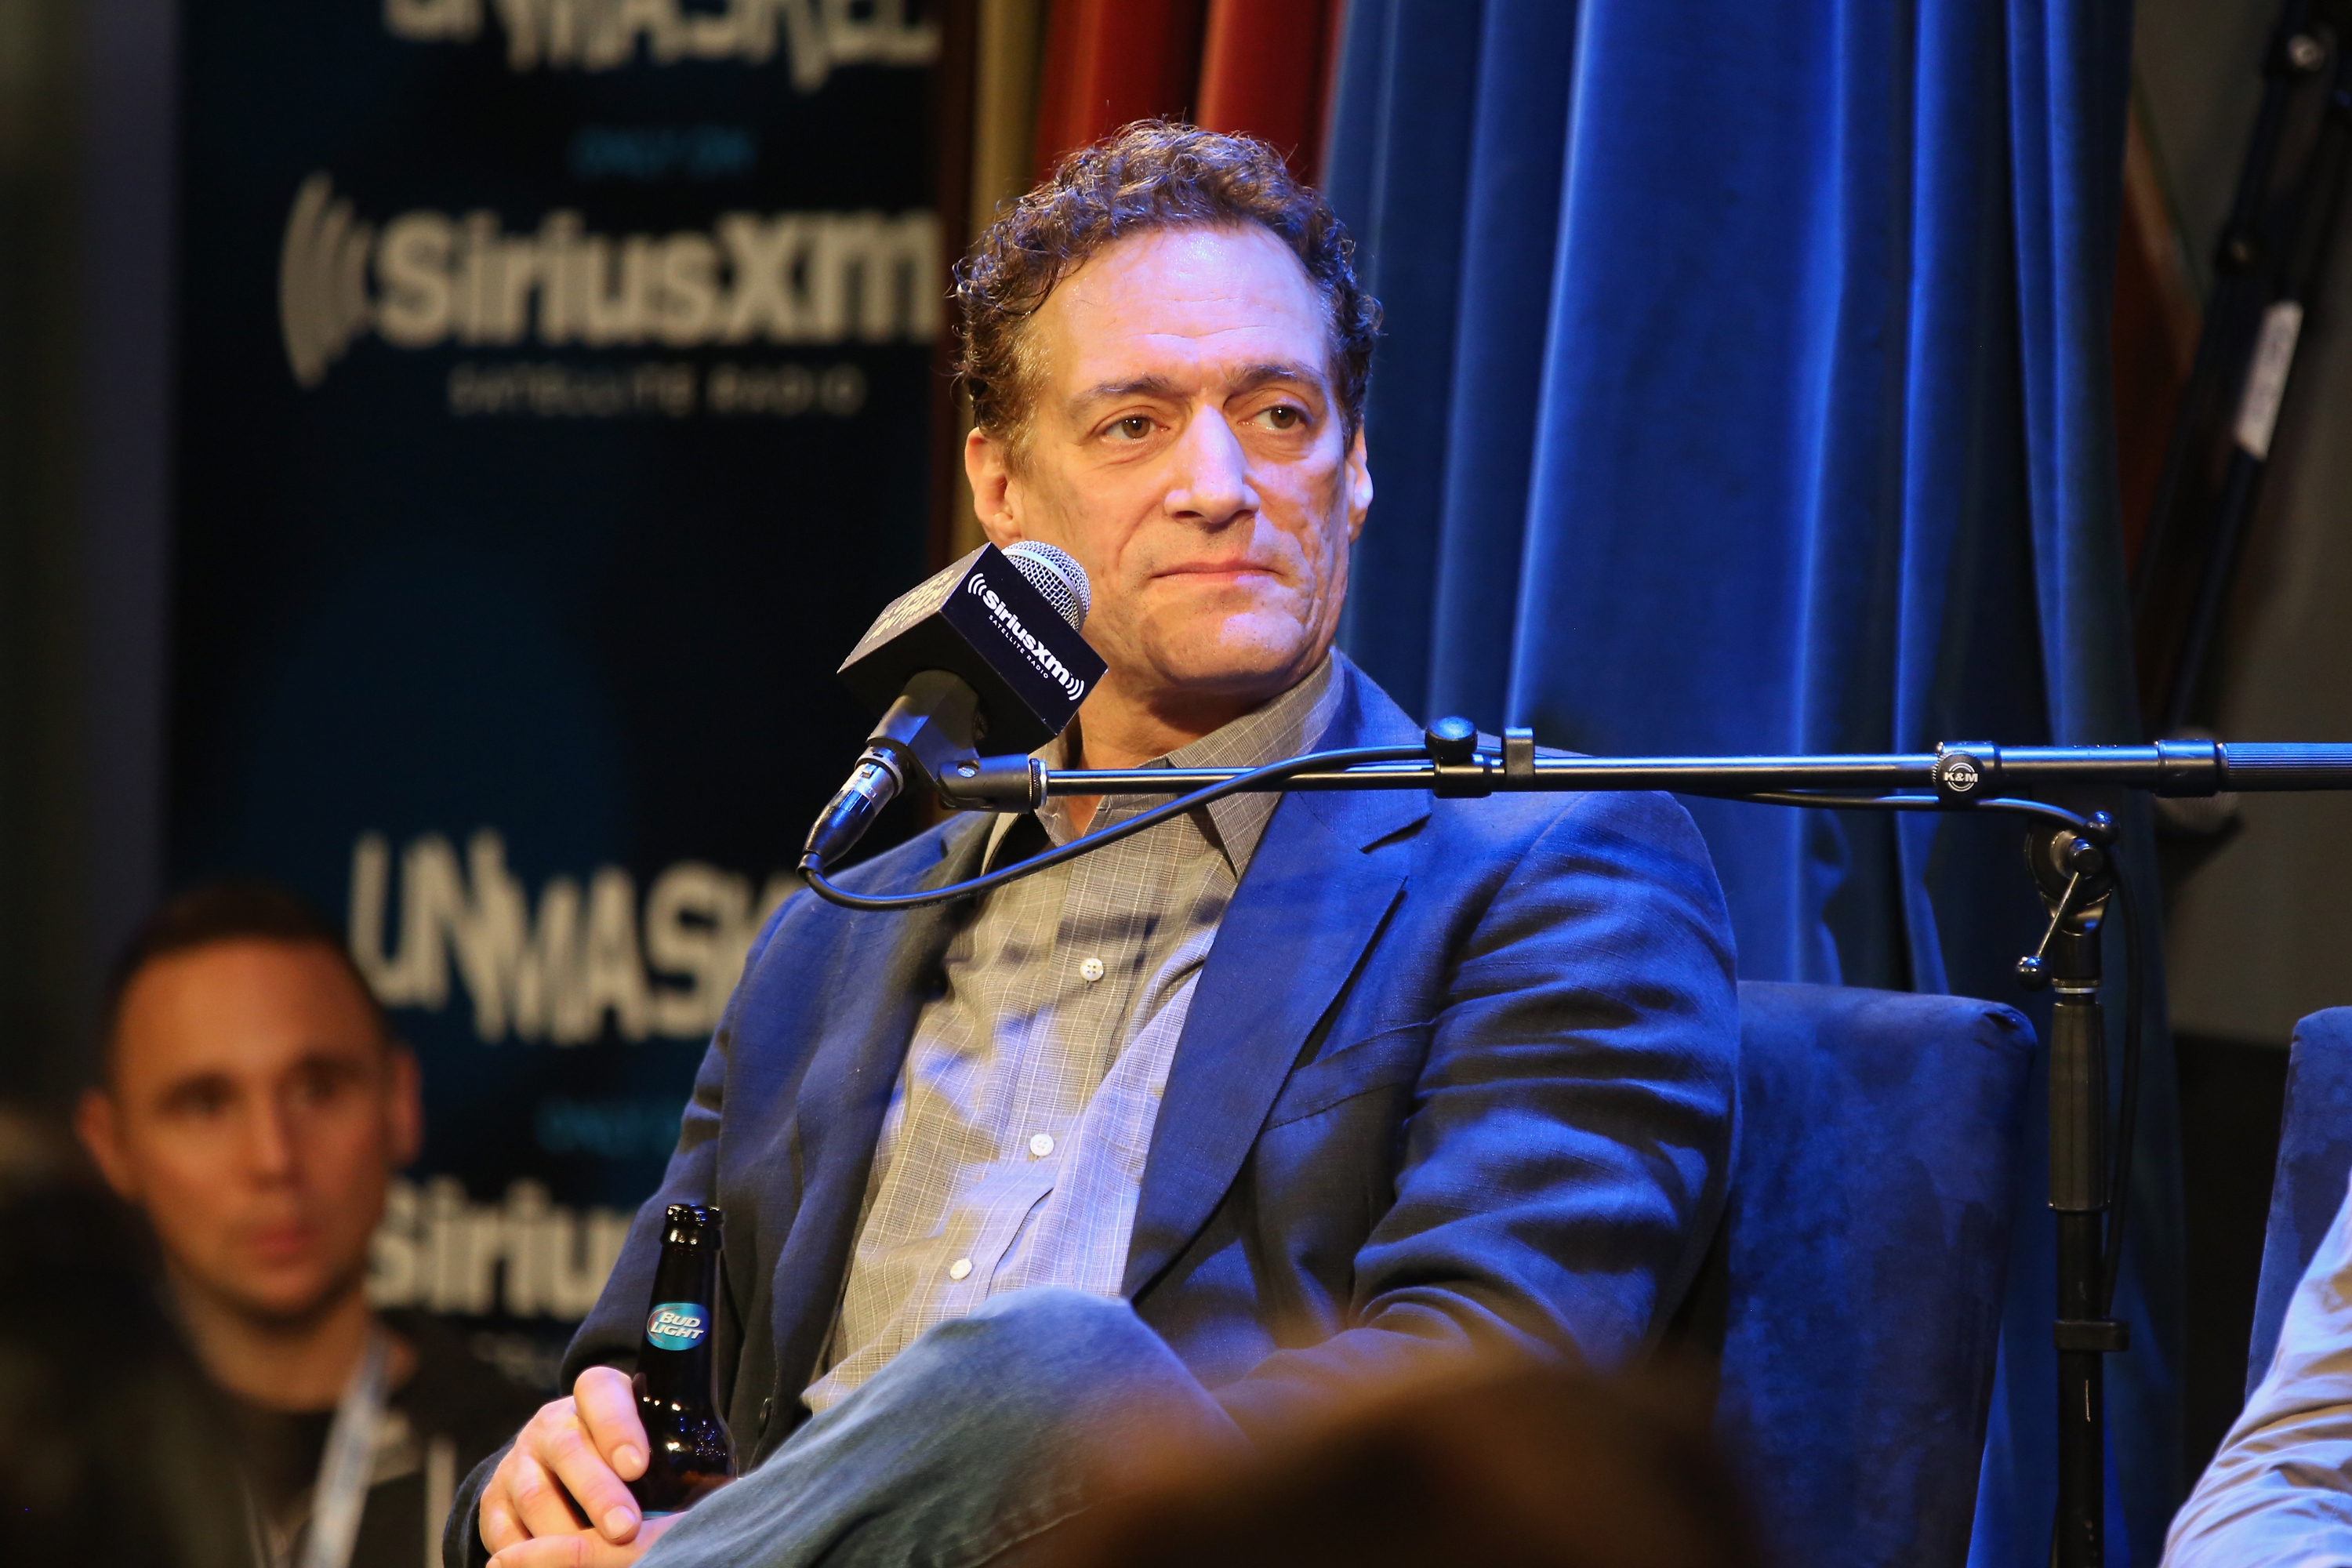 Anthony Cumia, 54, is accused of assaulting a 26-year-old woman in his New York home, police said.